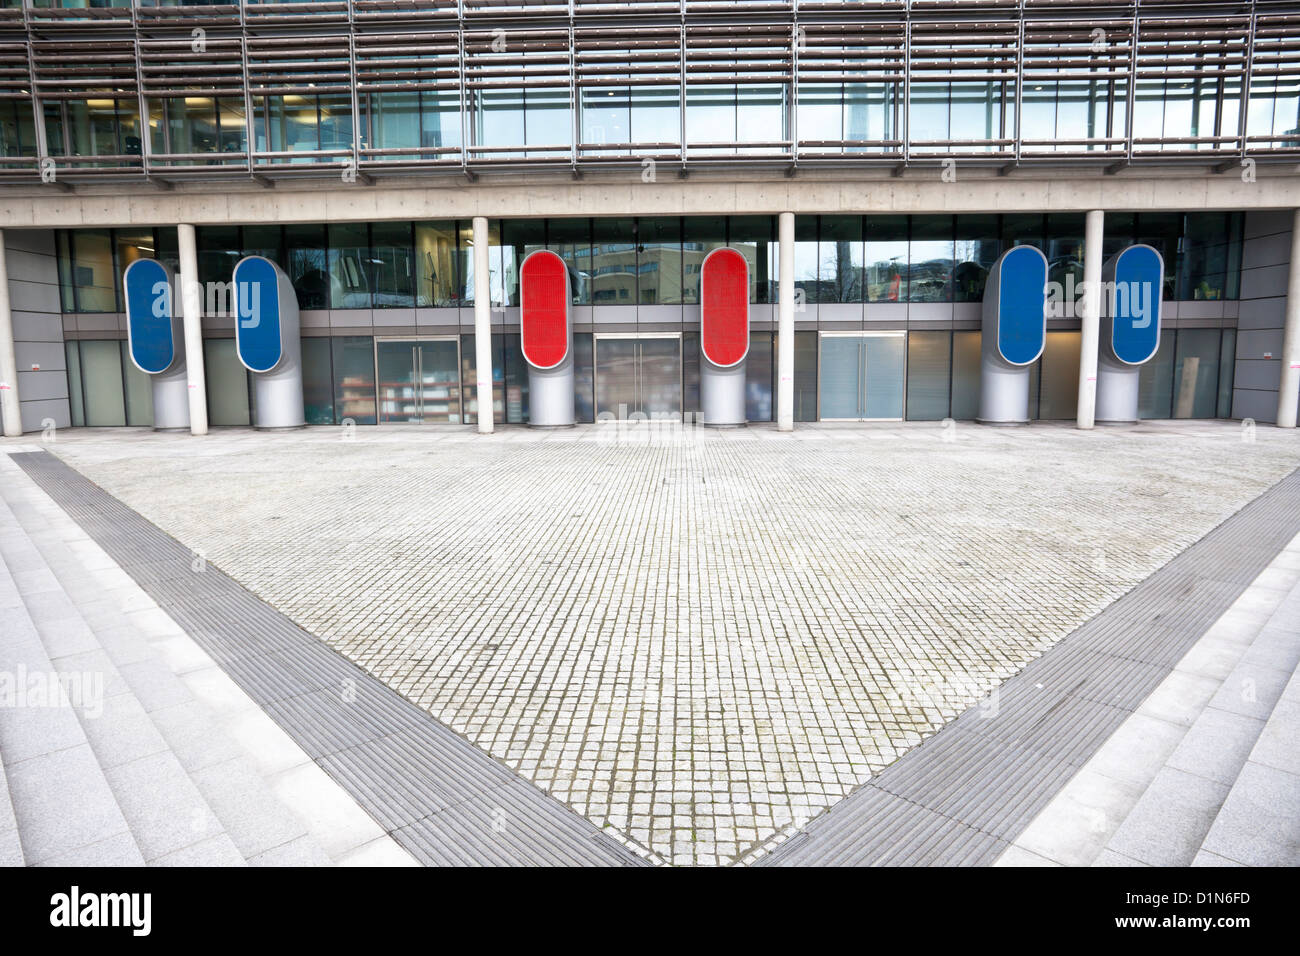 Ventilation shafts at the back of a building, London, England, UK - Stock Image